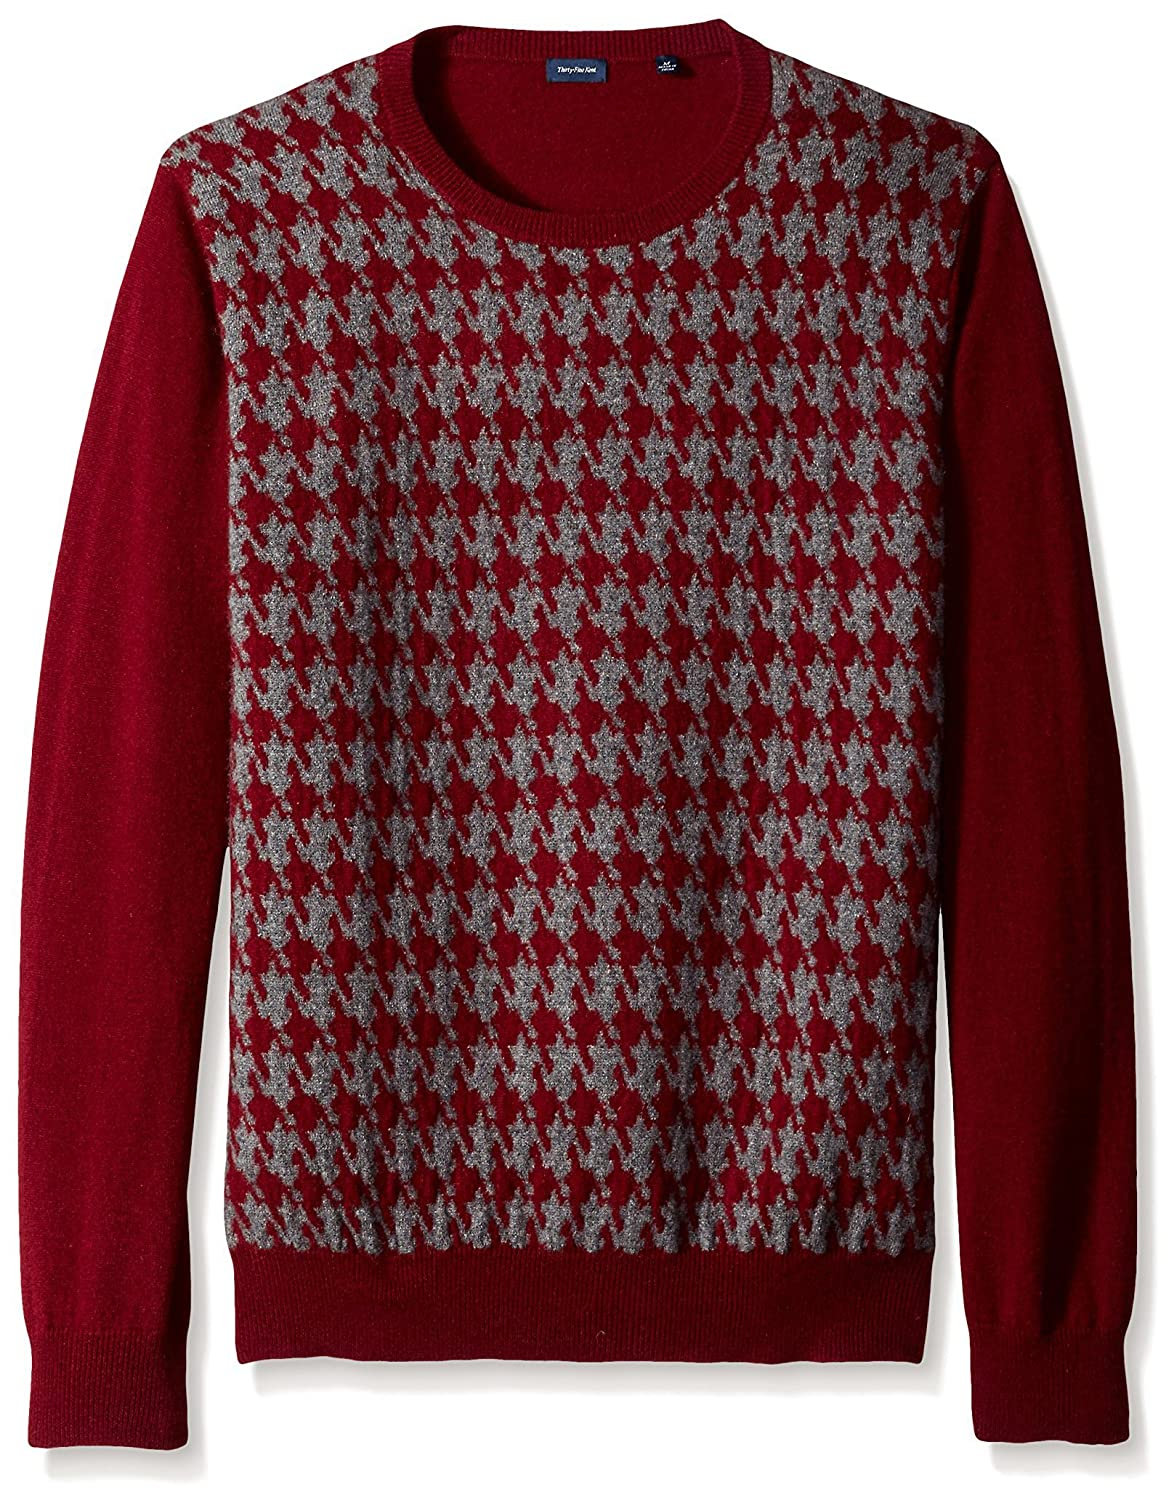 Men's Vintage Style Sweaters – 1920s to 1960s Thirty Five Kent Mens Houndstooth Cashmere Crew Neck Sweater $109.00 AT vintagedancer.com